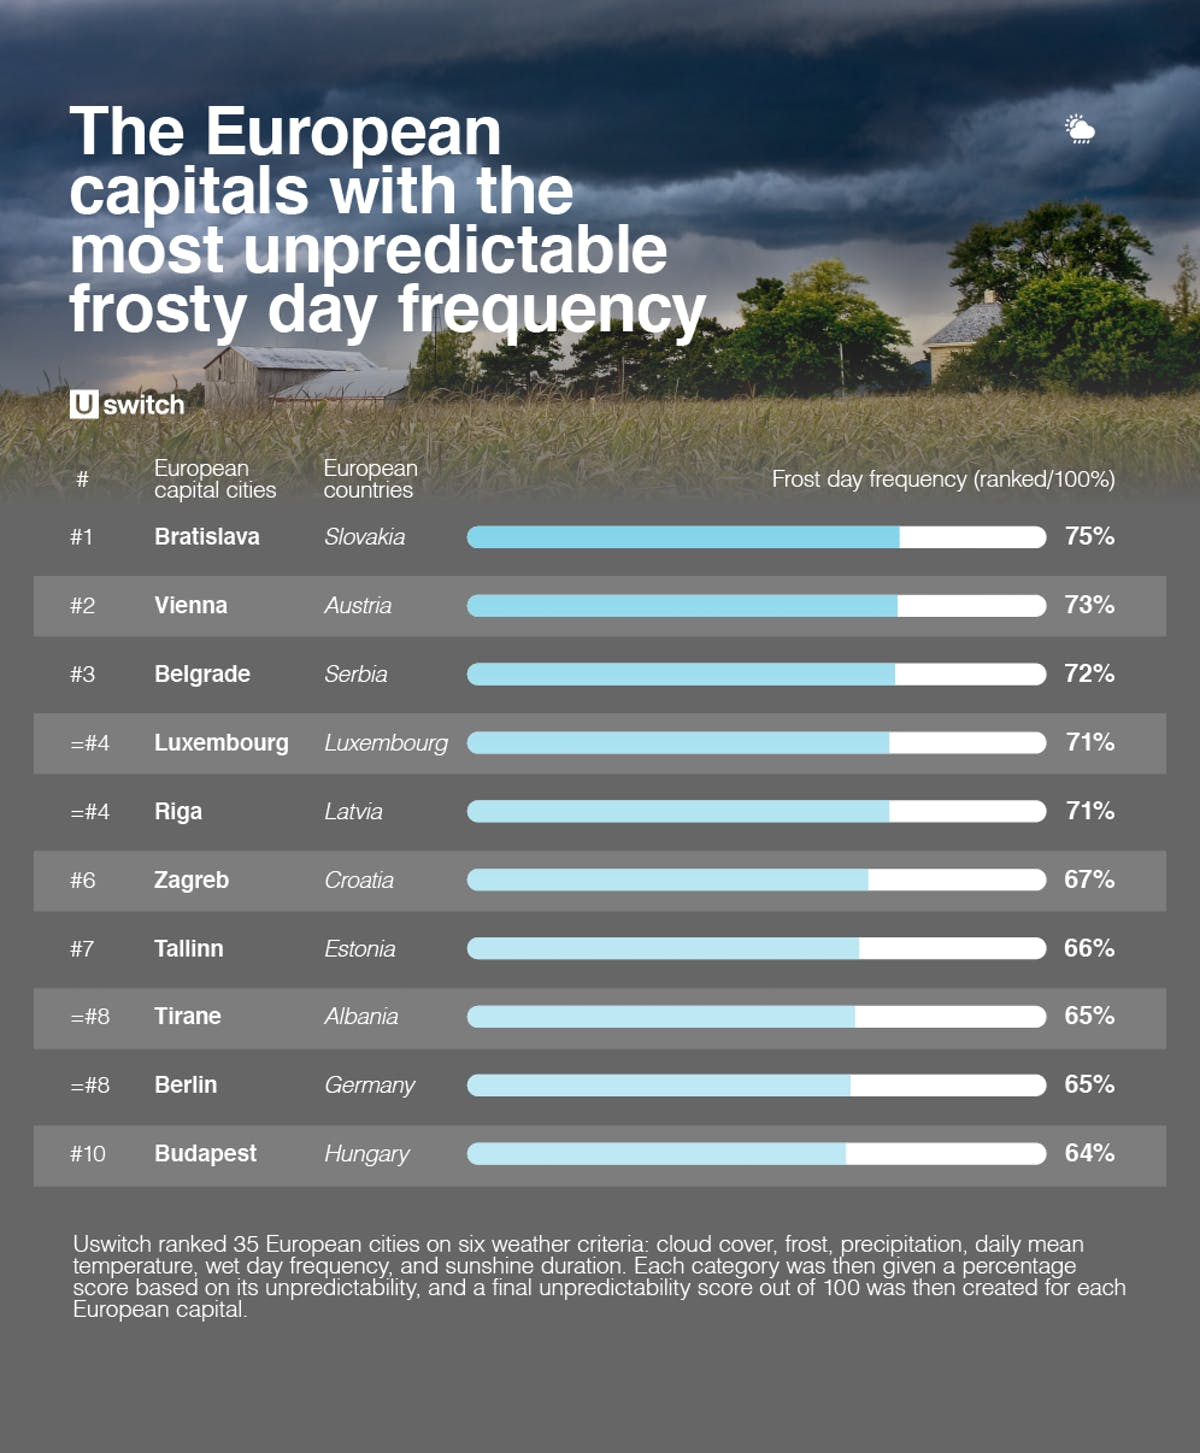 Table of European capitals with the most unpredictable weather frosty day frequency